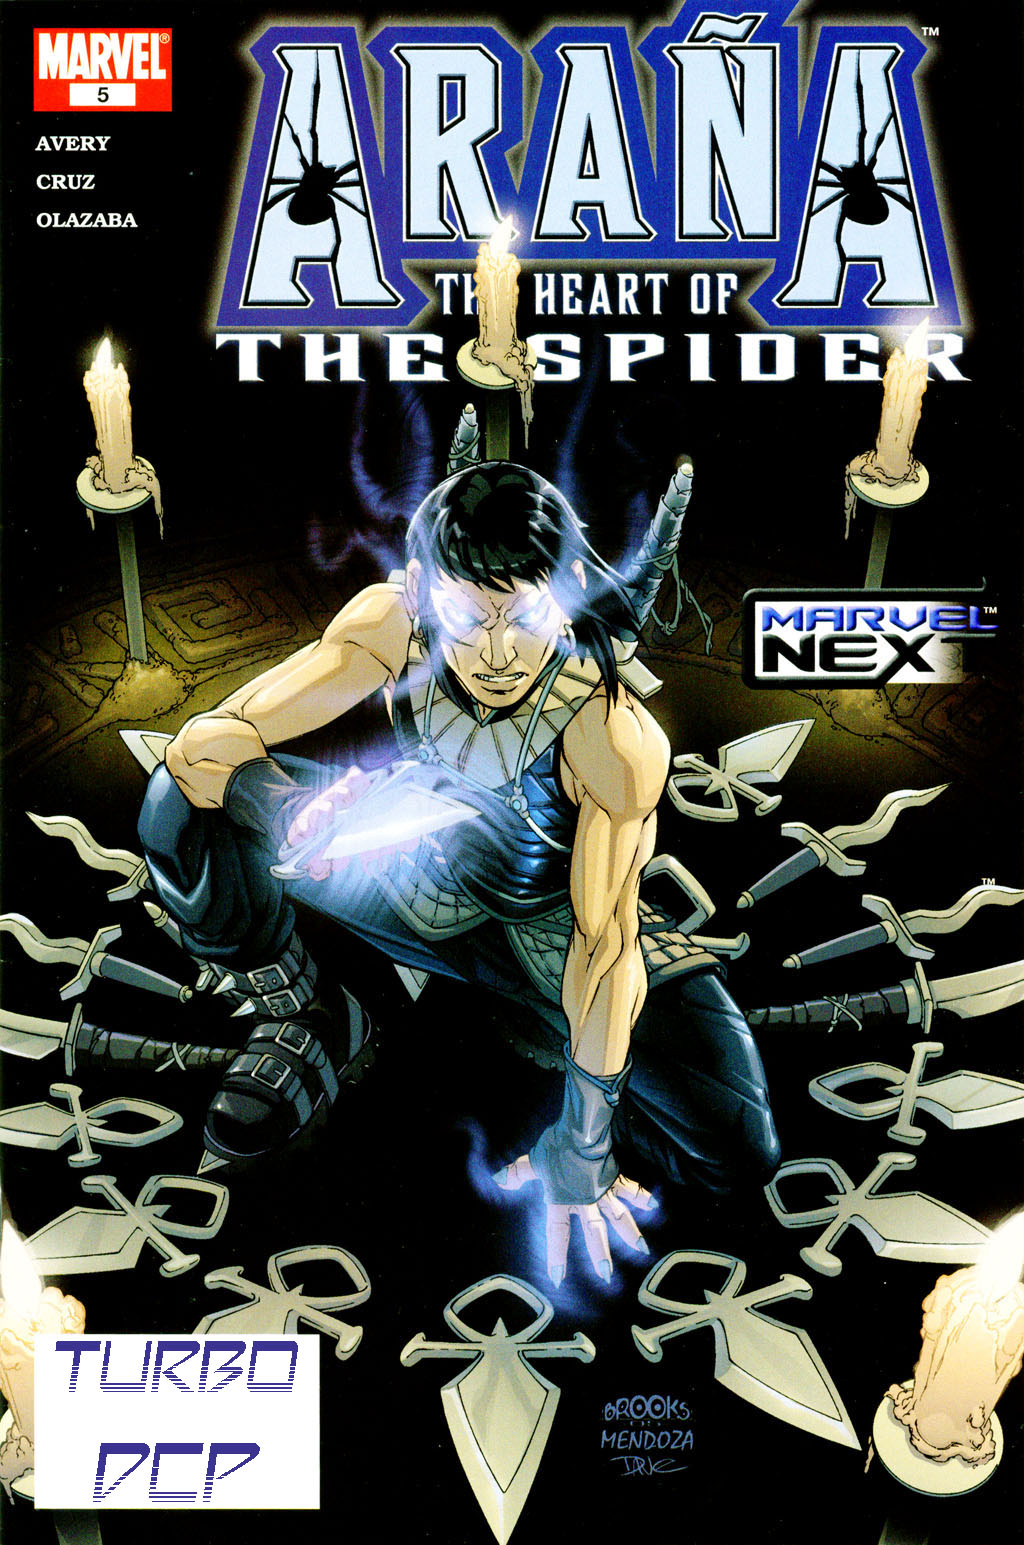 Read online Araña: Heart of the Spider comic -  Issue #5 - 1